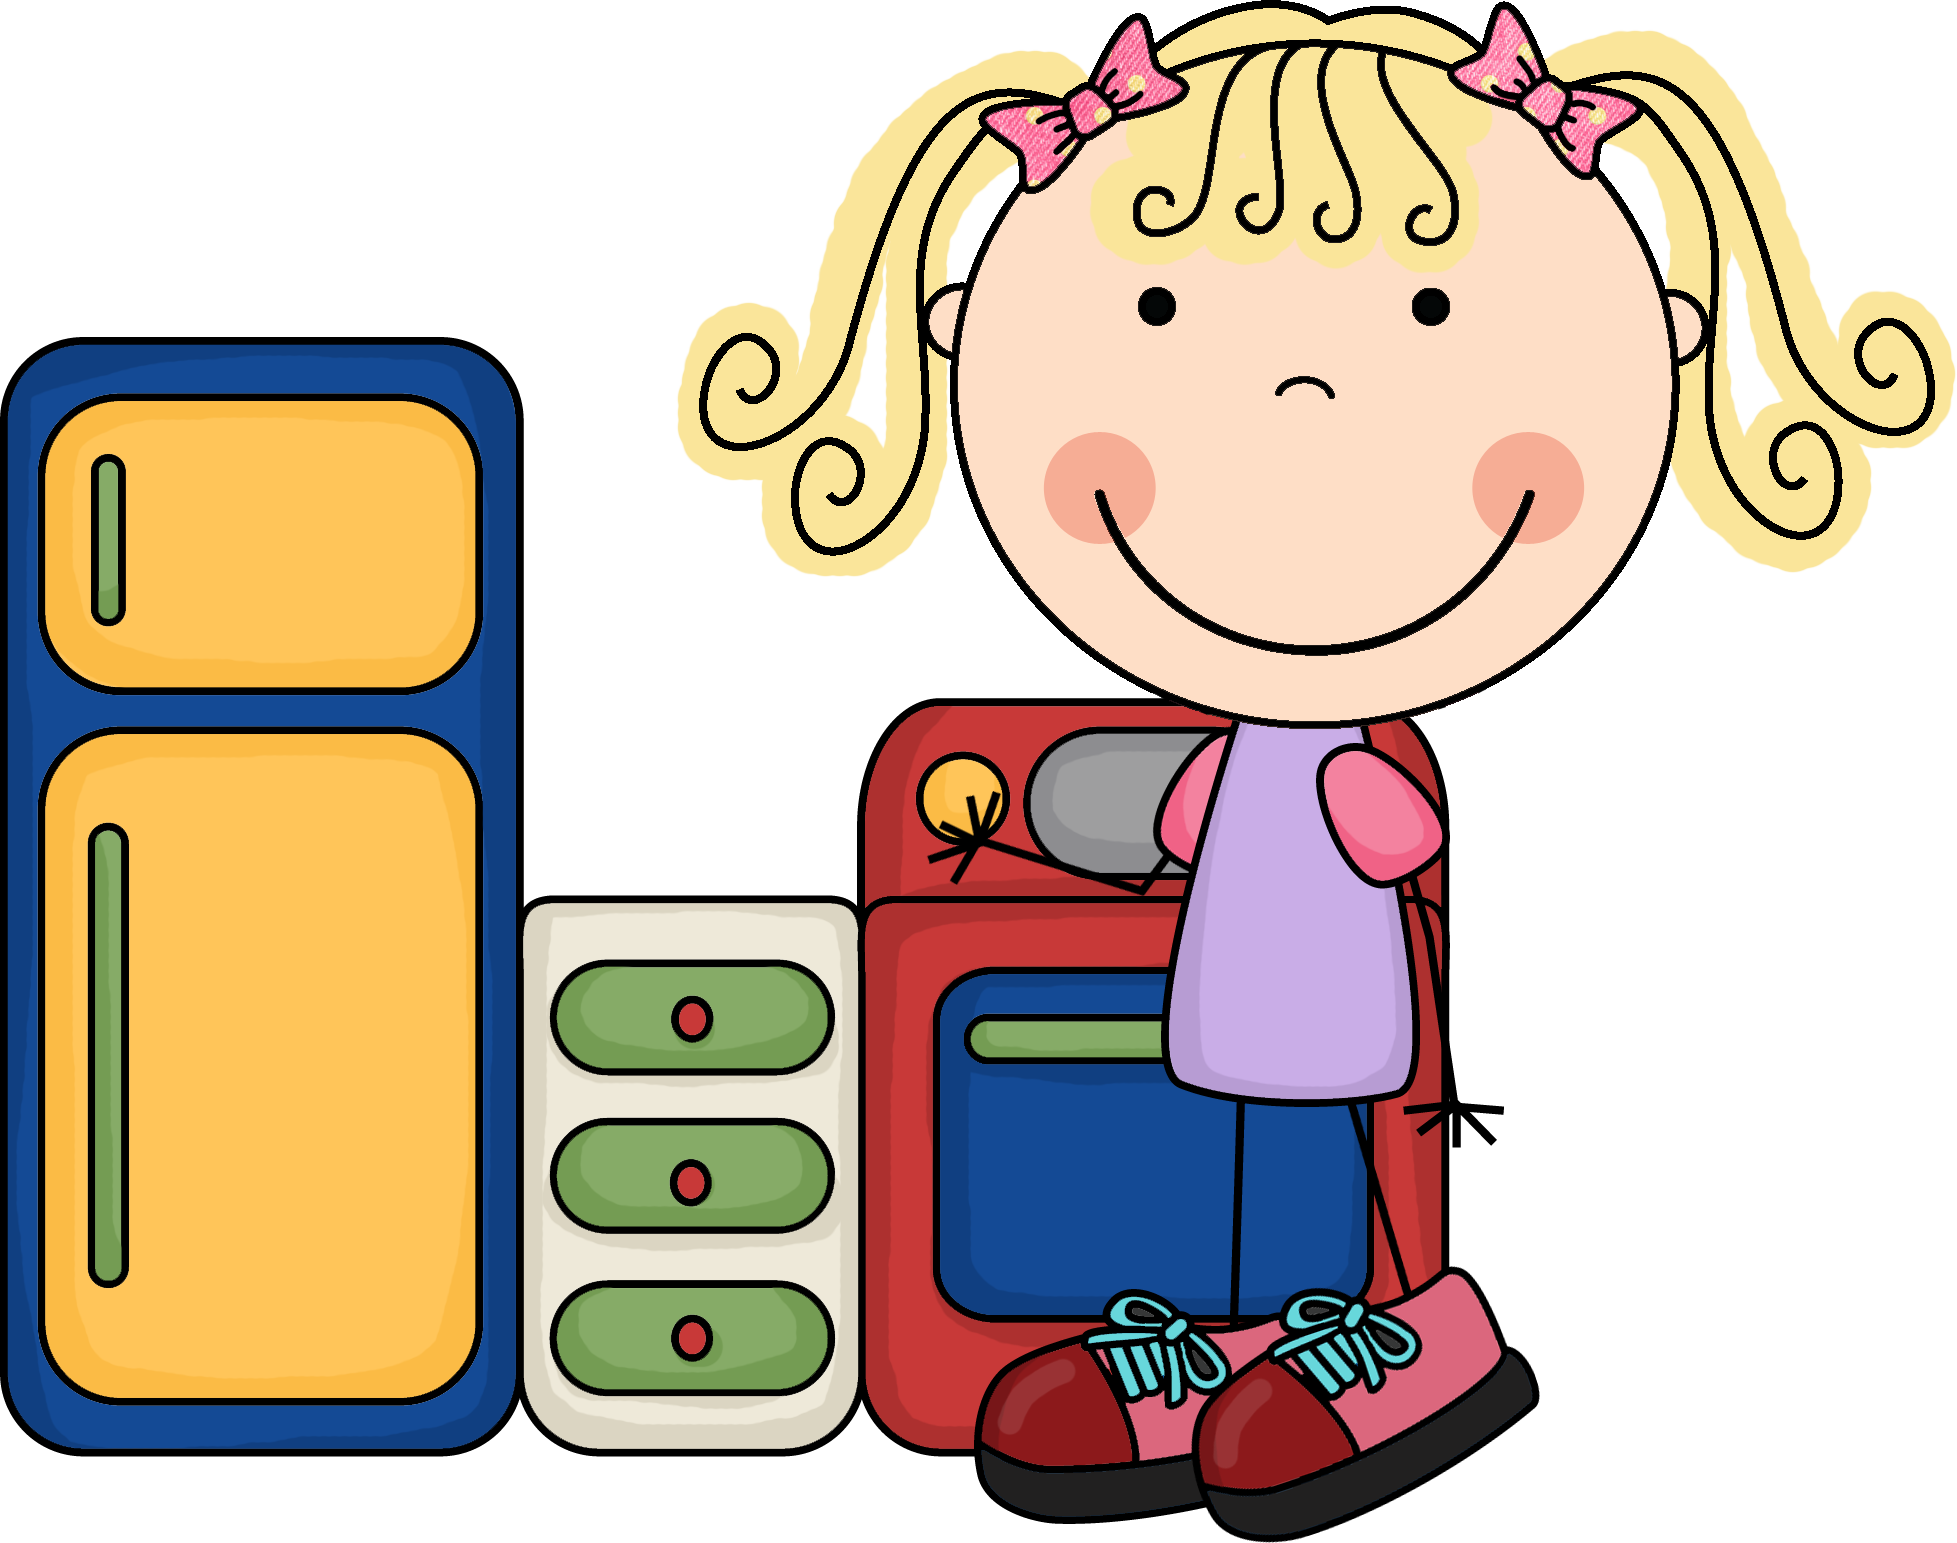 Clip Art Housekeeping Clipart housekeeping clipart kid 23 photos free cliparts that you can download to you